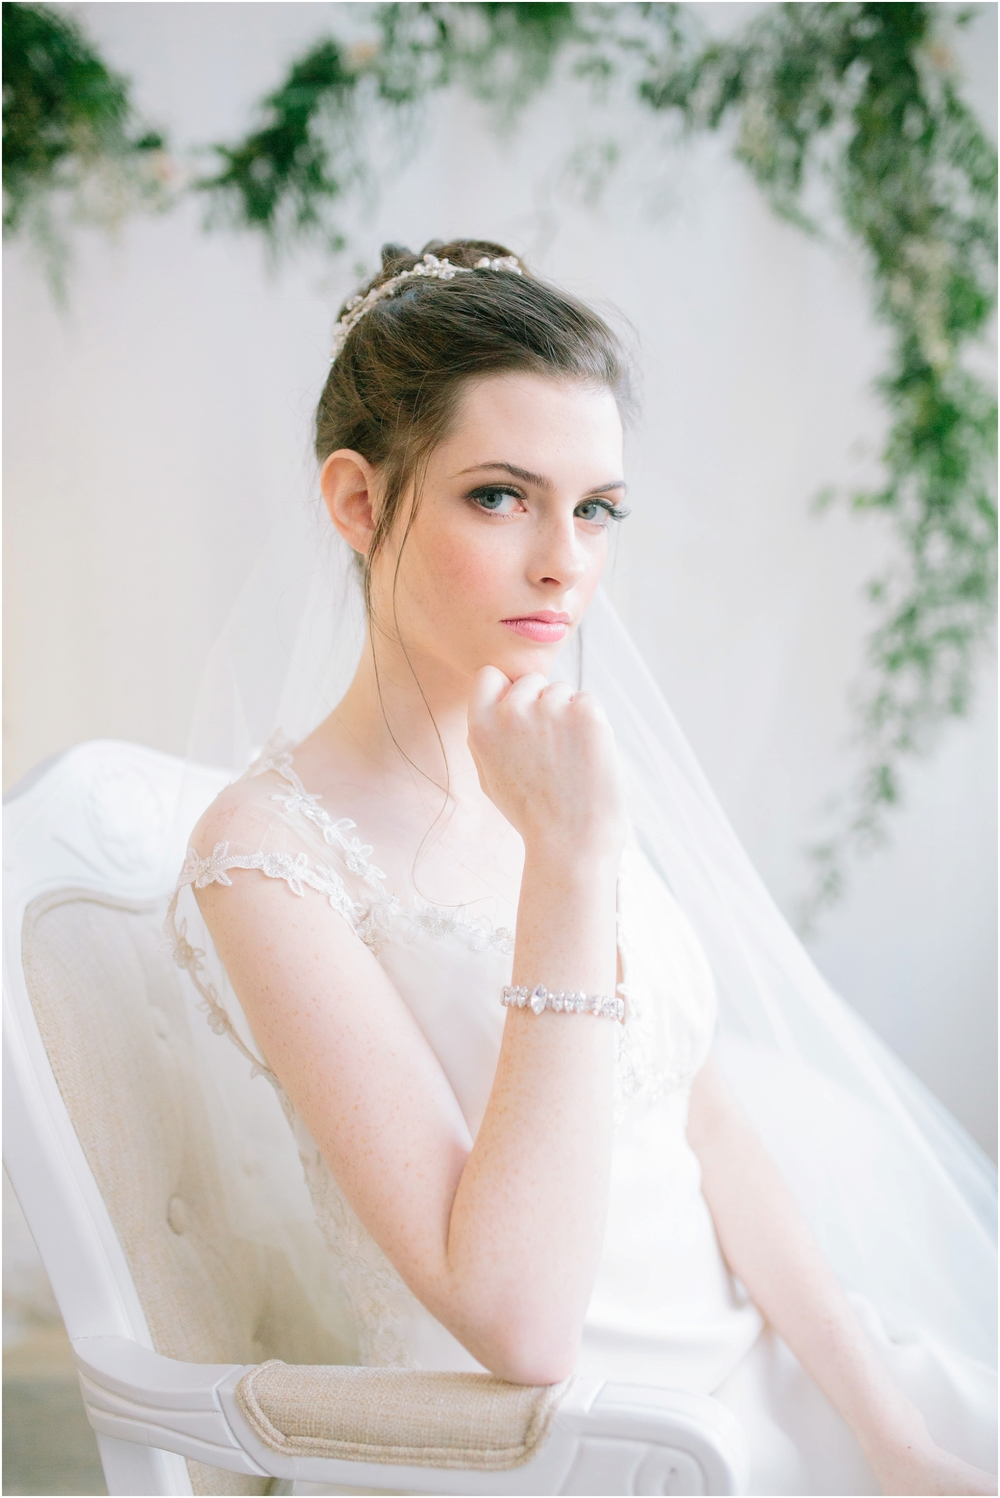 suzanne_li_photography_bridal_accessories_susan_dick_0013.jpg